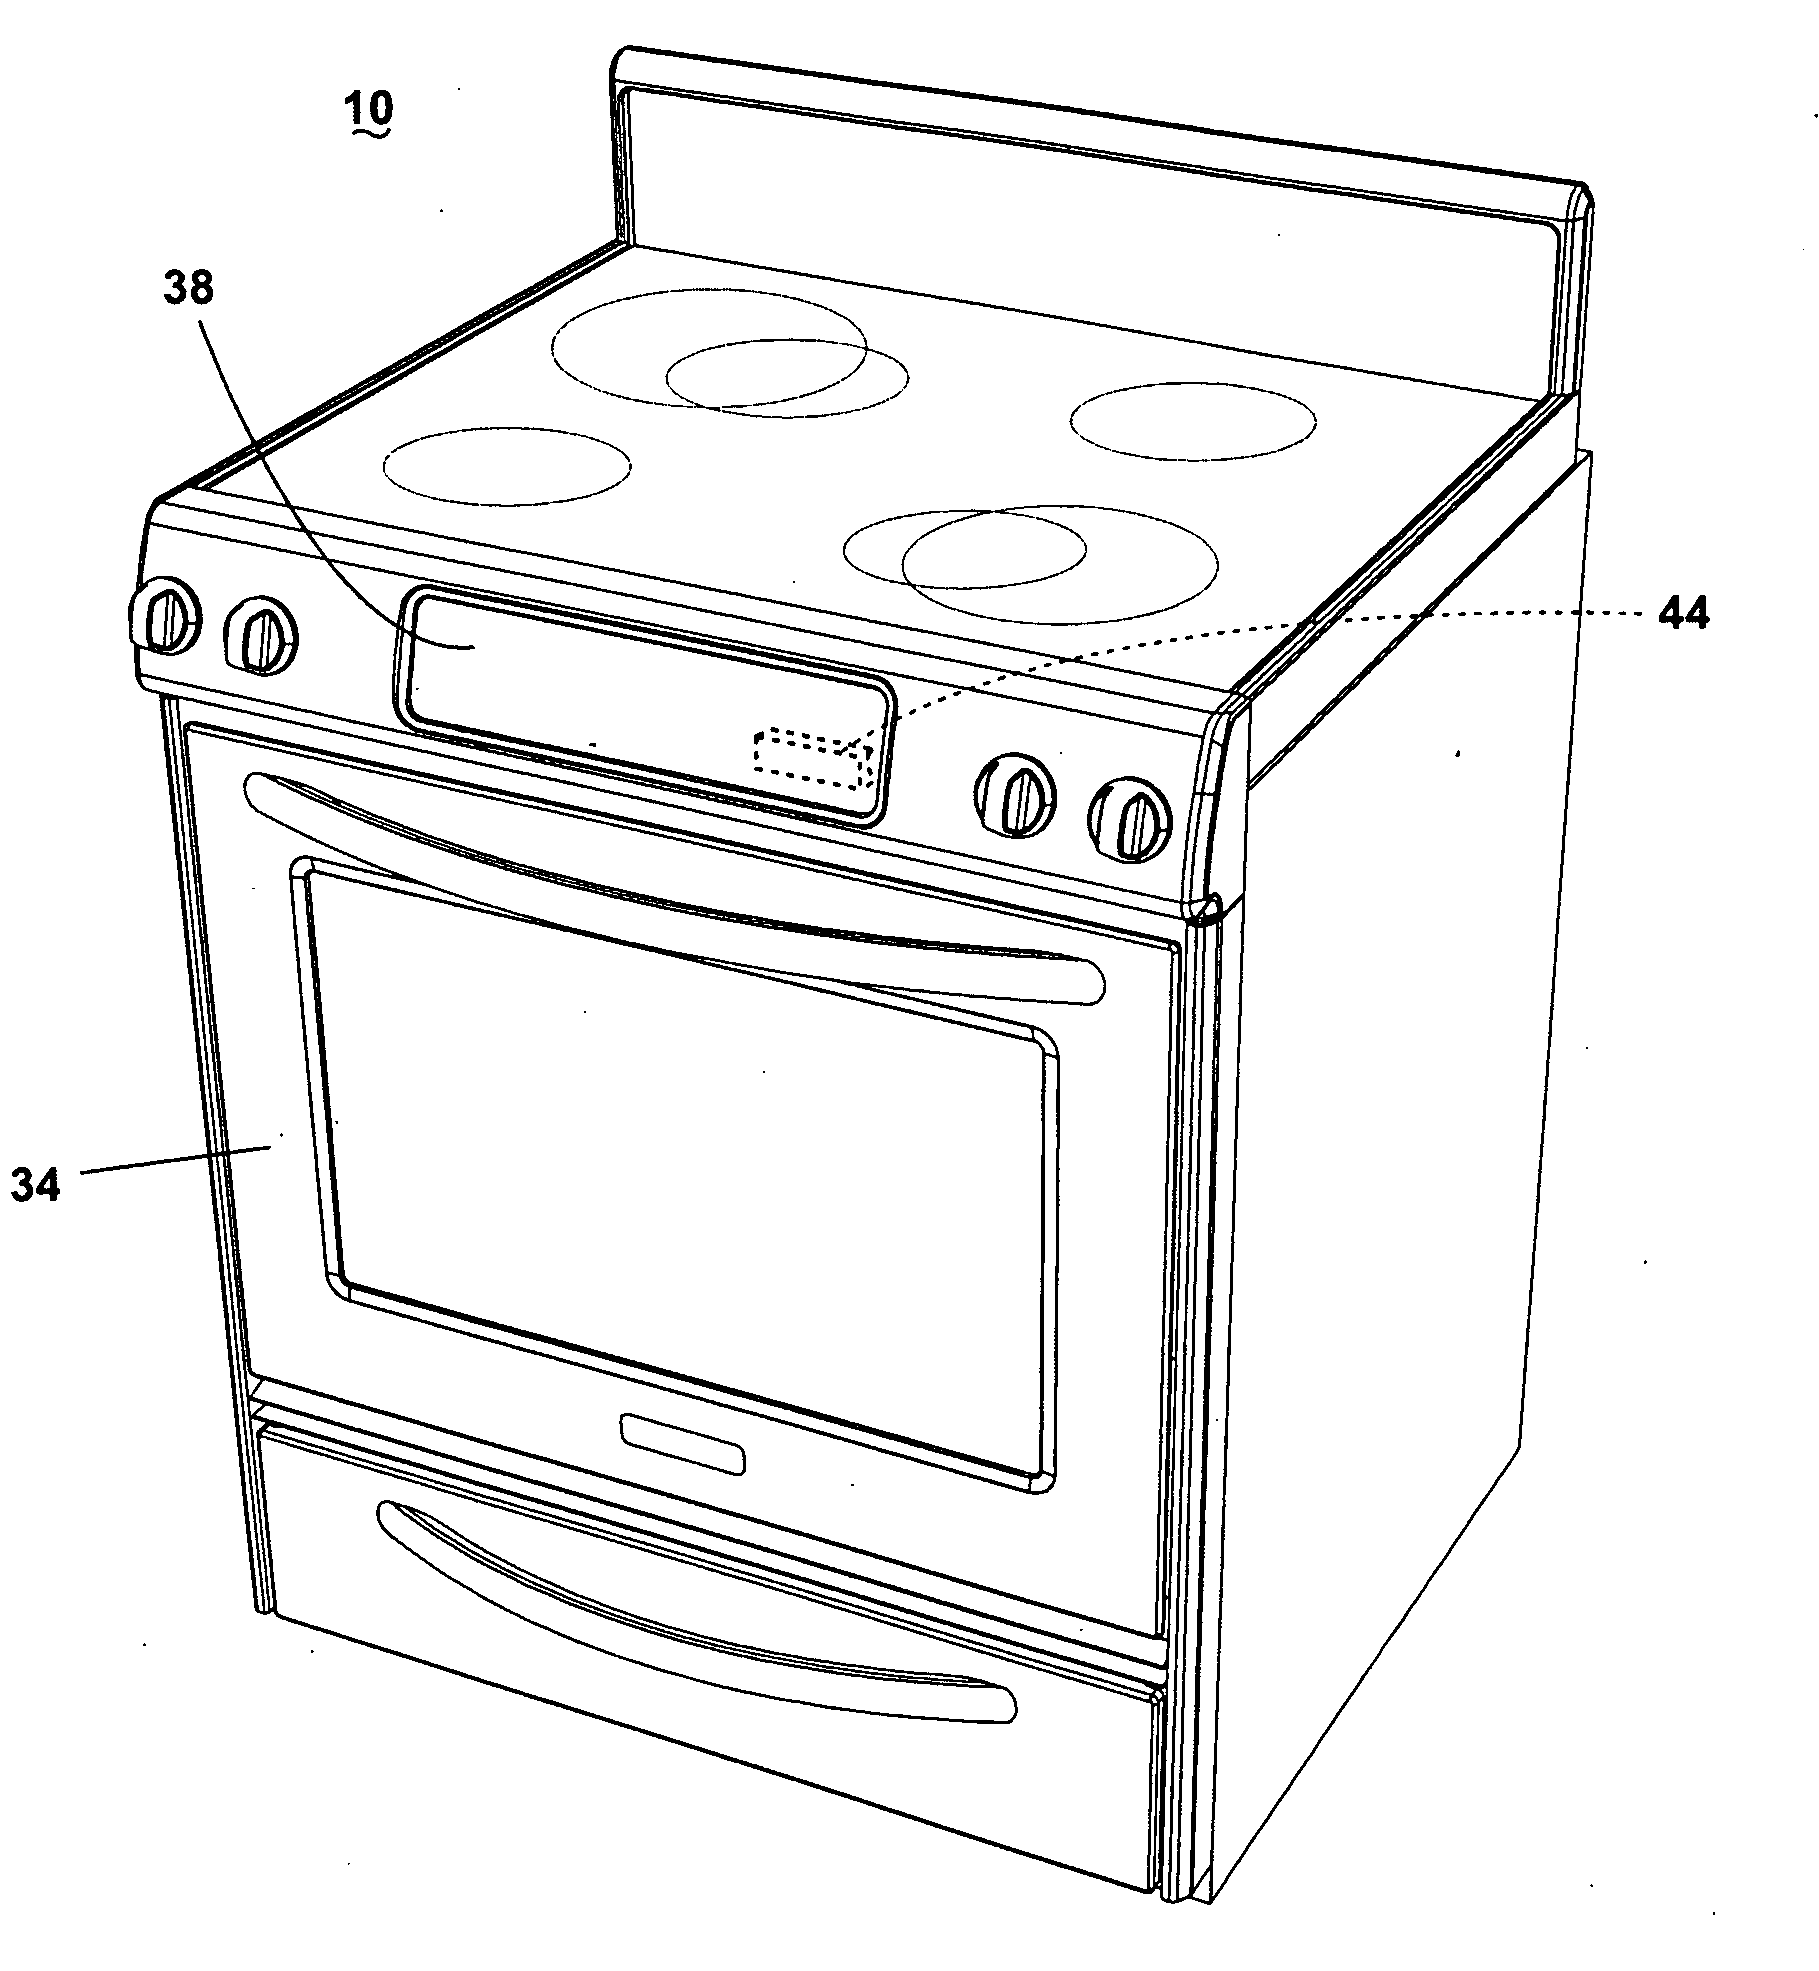 patent us20100006085 - convection oven